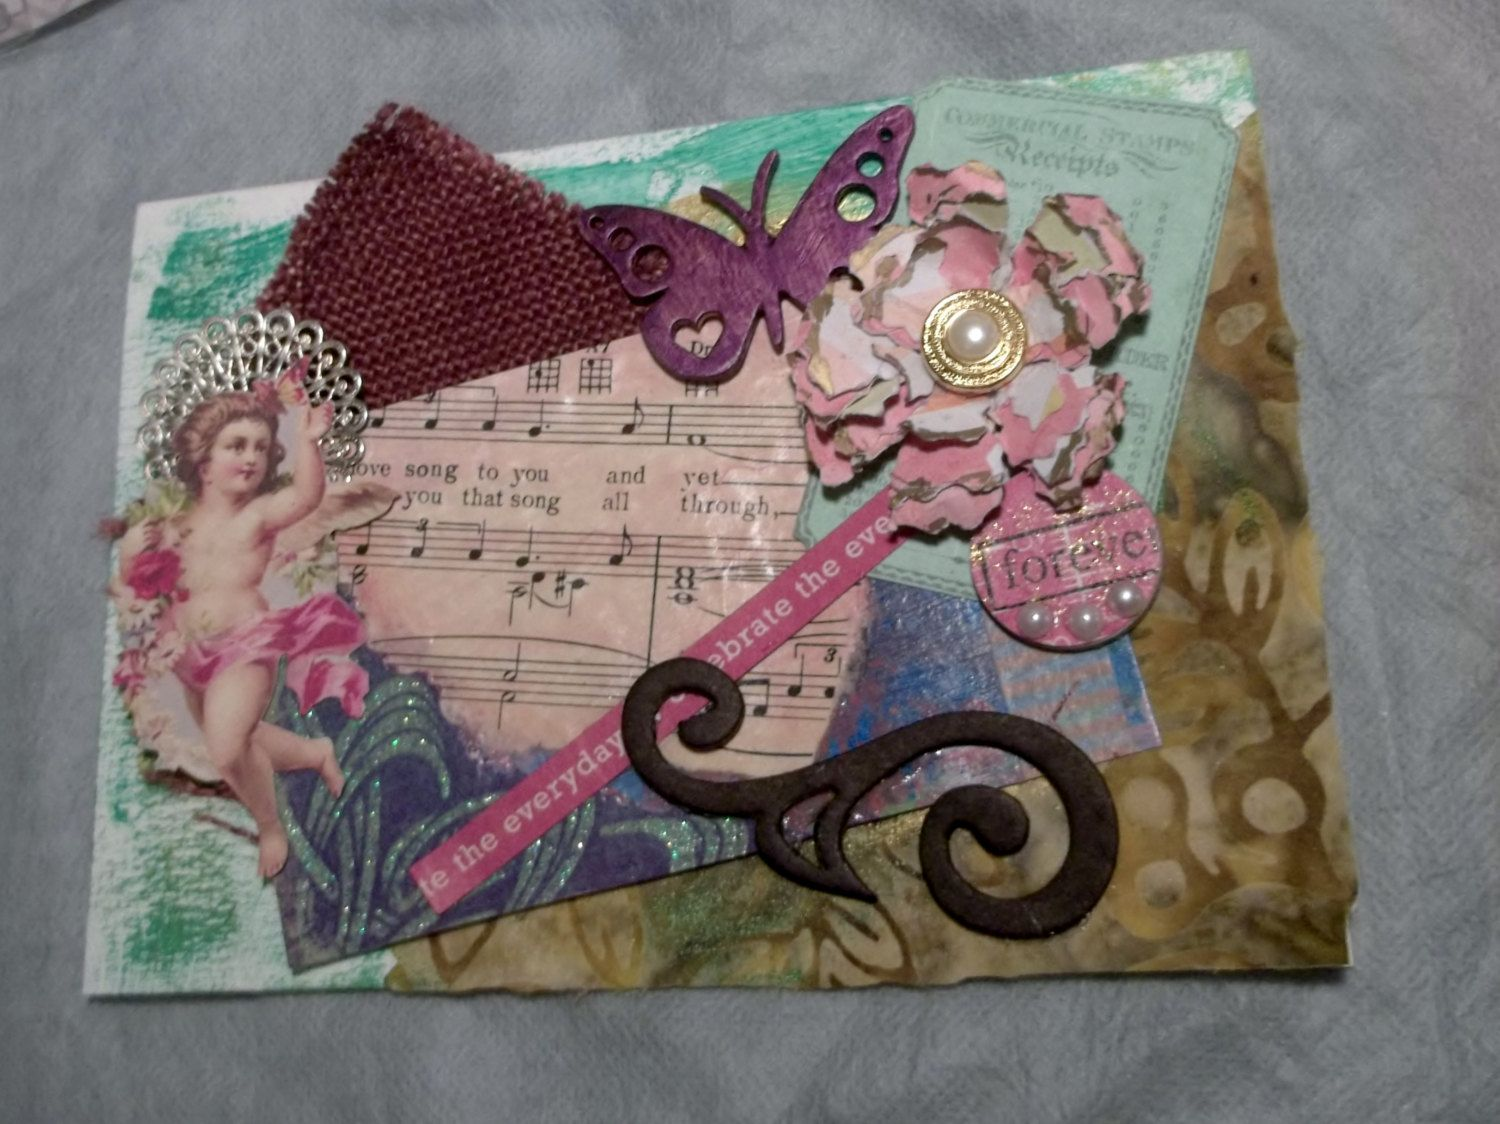 Handmade greeting card collage mixed media cherub handmade handmade greeting card collage mixed media cherub handmade flower love song kristyandbryce Image collections